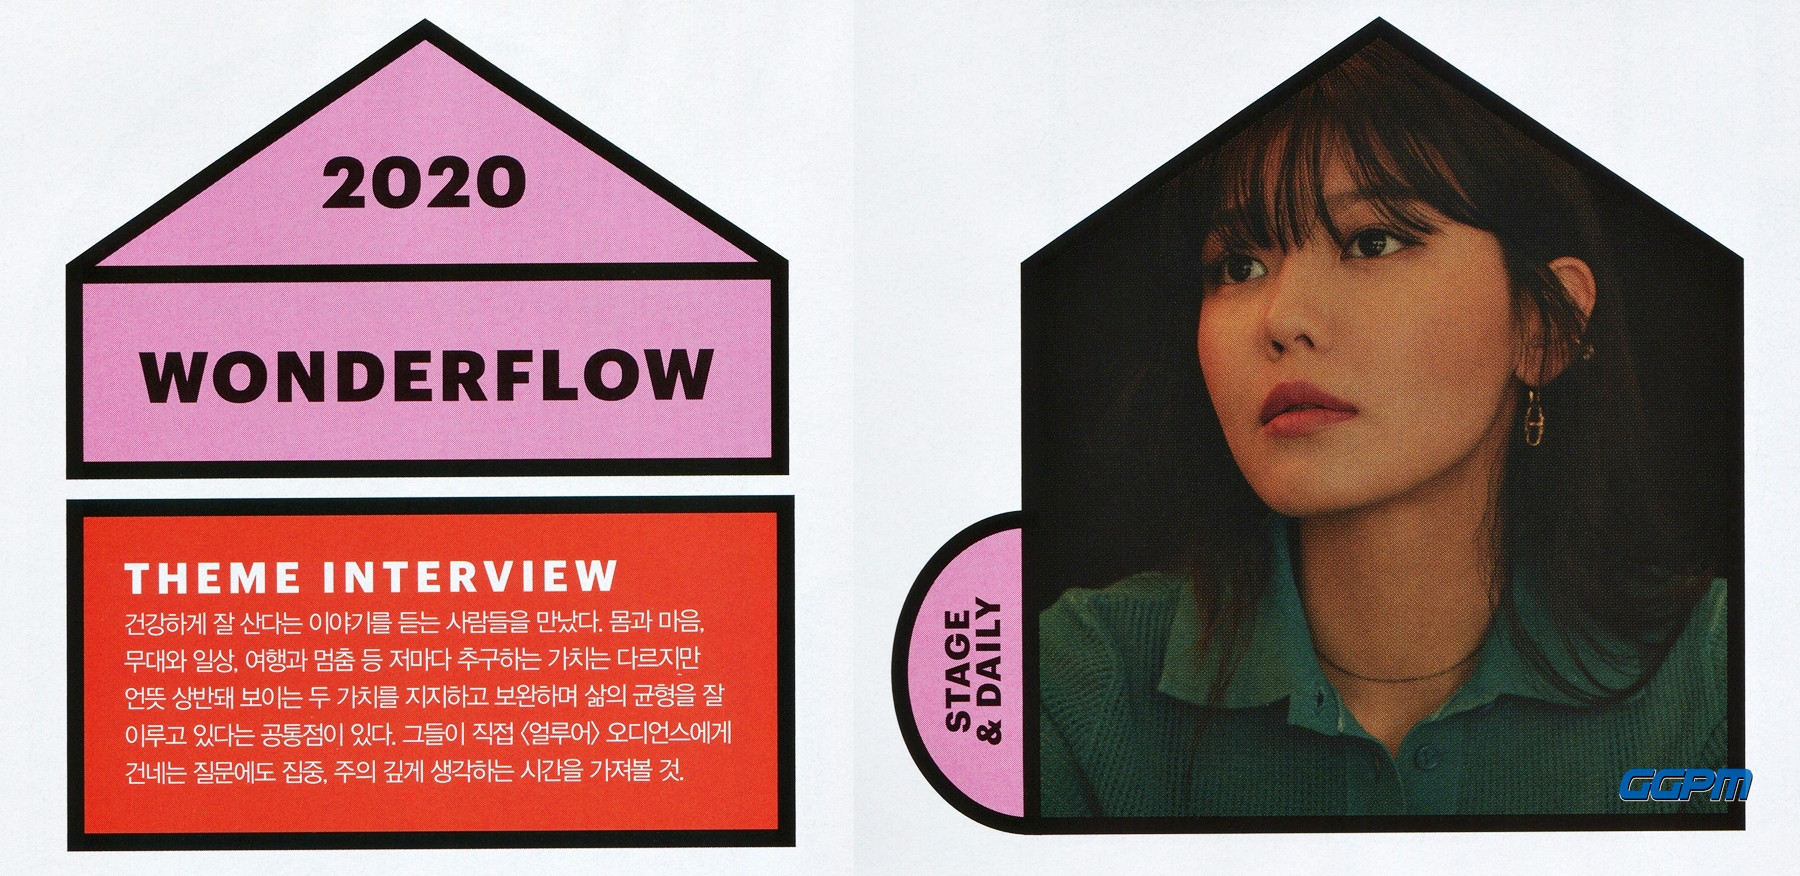 Sooyoung – 2020 December, Allure Magazine